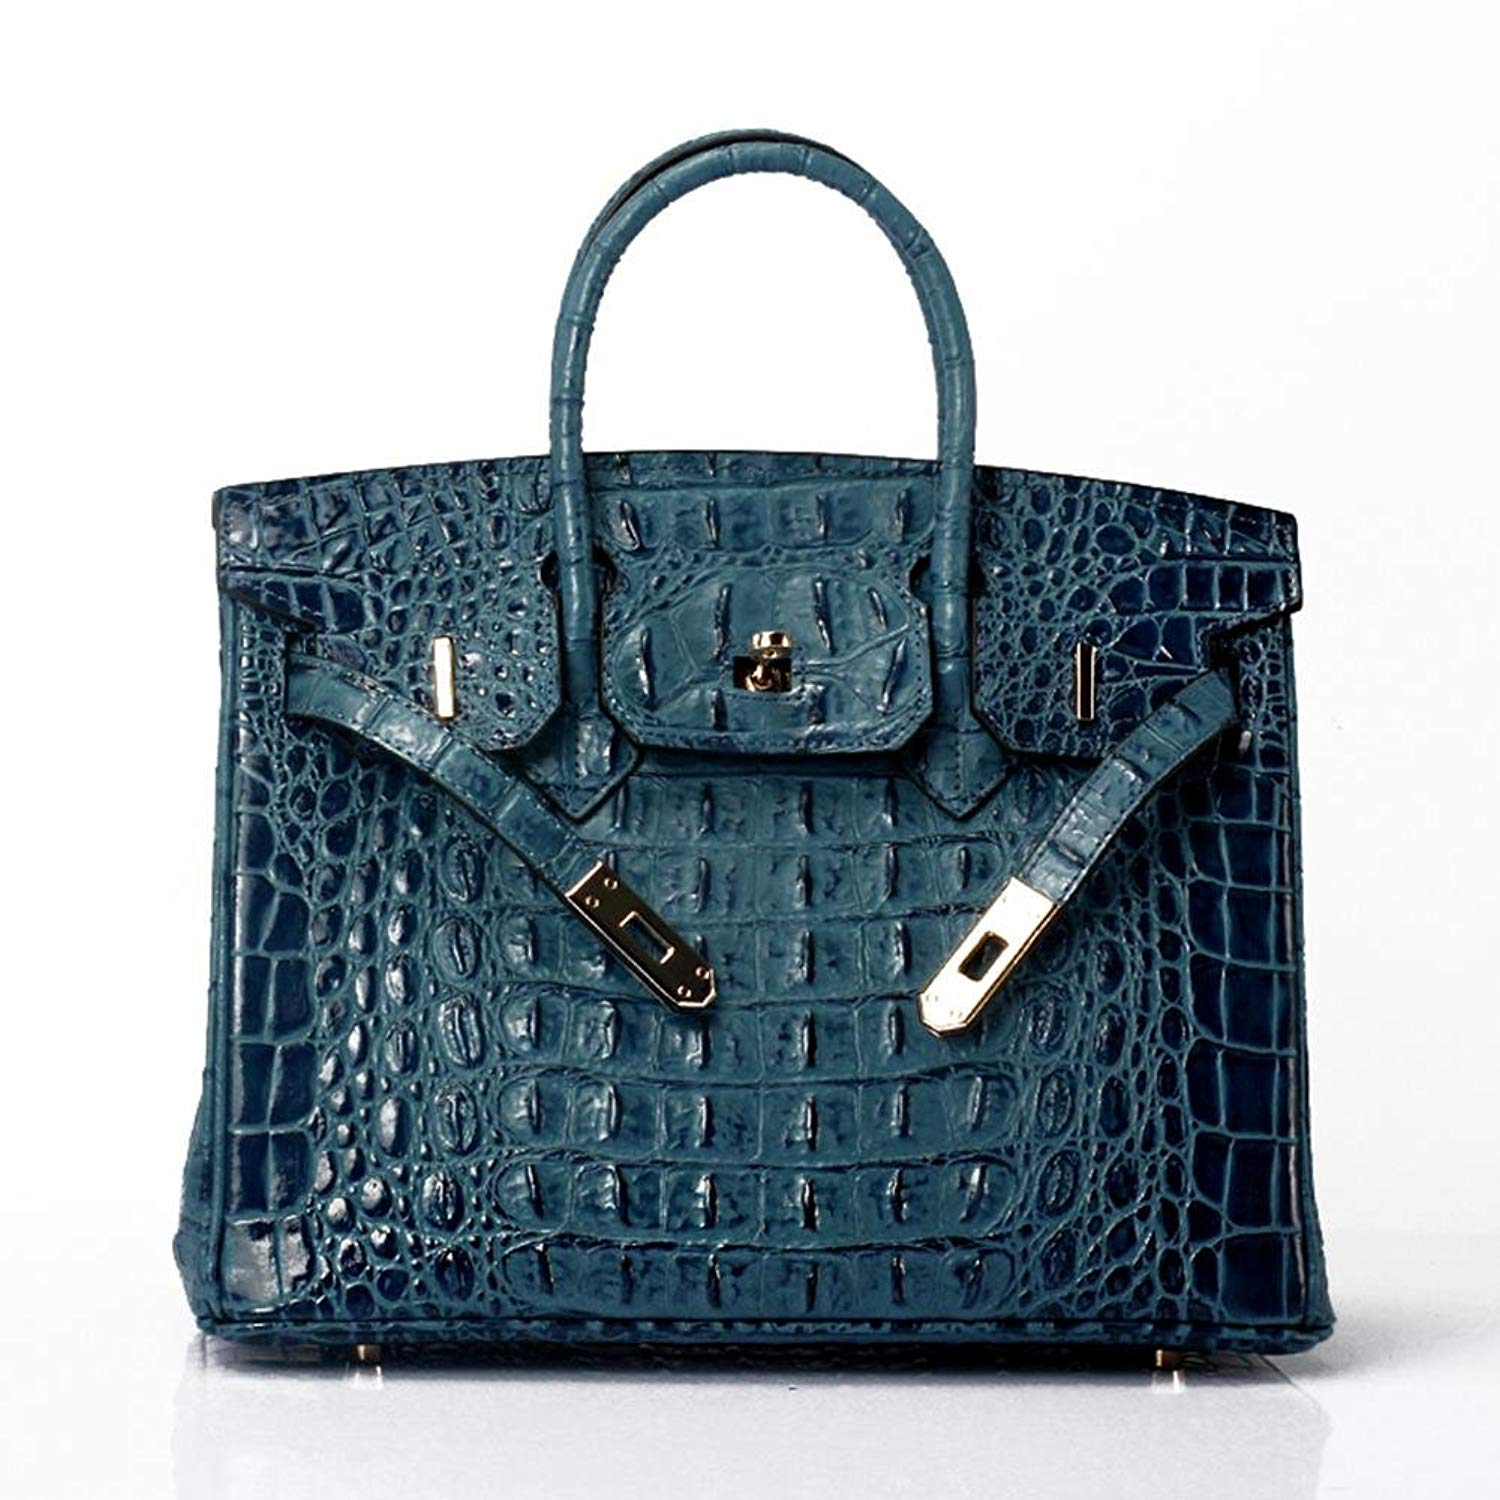 524778bc93 Get Quotations · Lalagen Women s Crocodile Embossed Clearance Genuine  Leather Top Handle Padlock Purses and Handbags